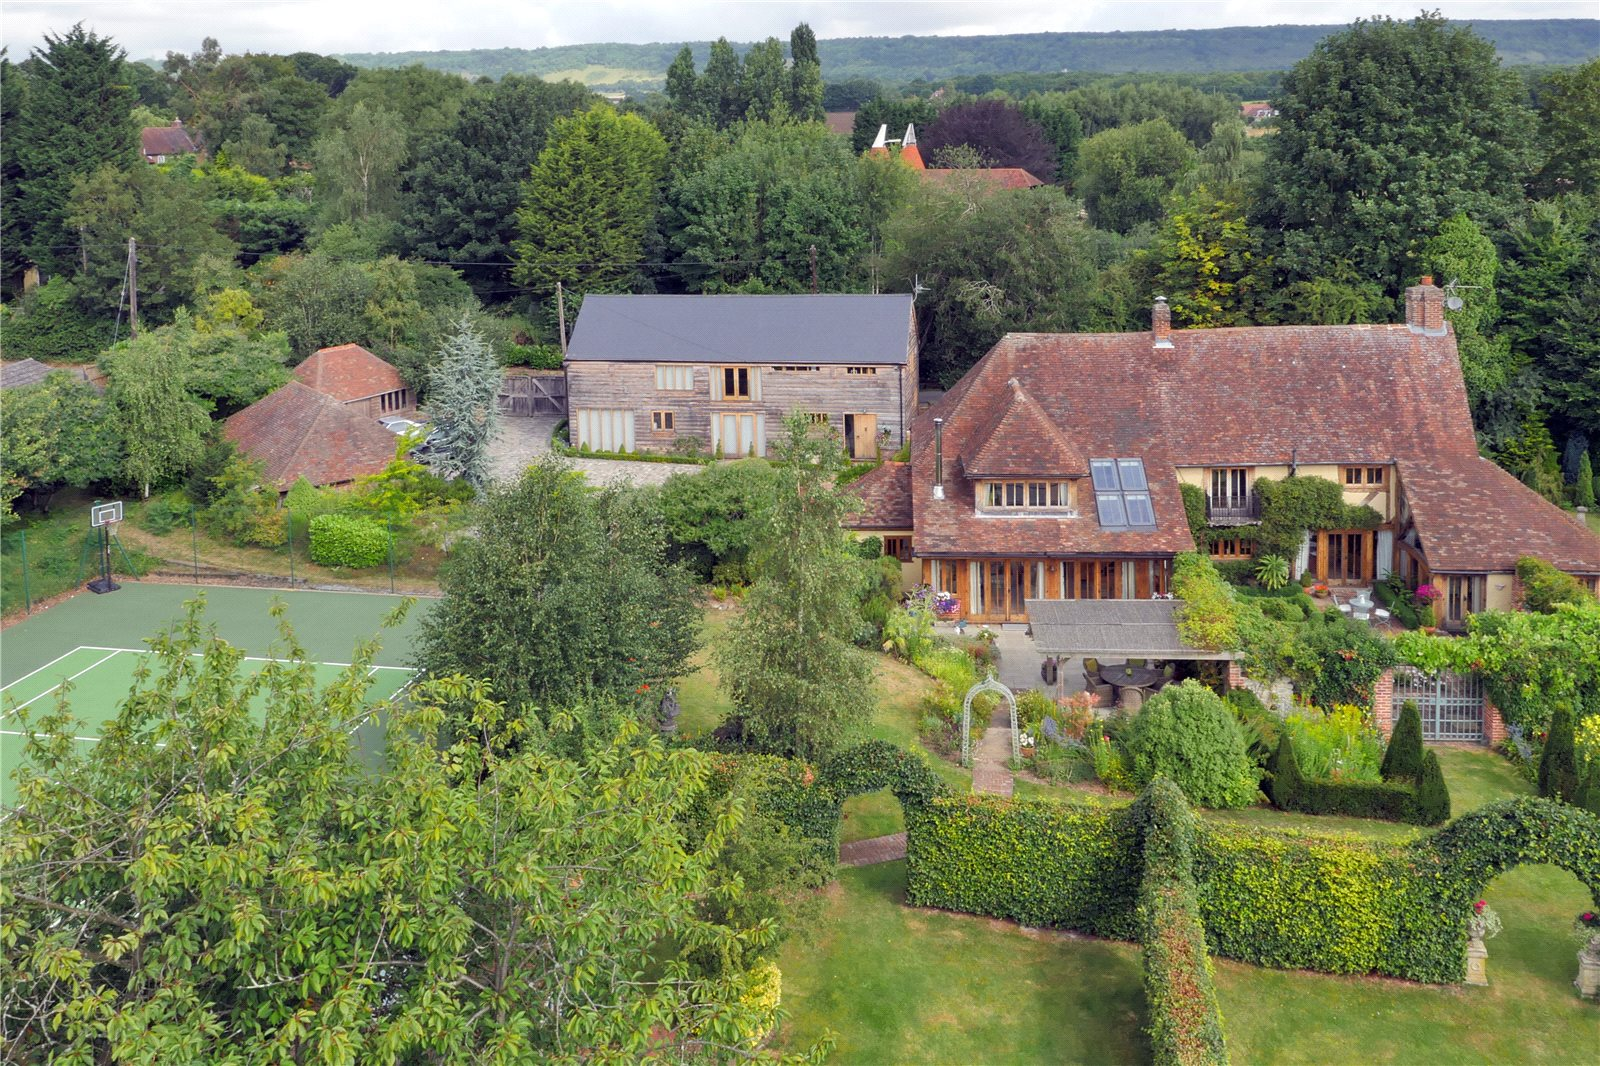 Частный дом для того Продажа на Mill House Lane, Addington,West Malling, Nr Sevenoaks, Kent, ME19 Kent, Англия